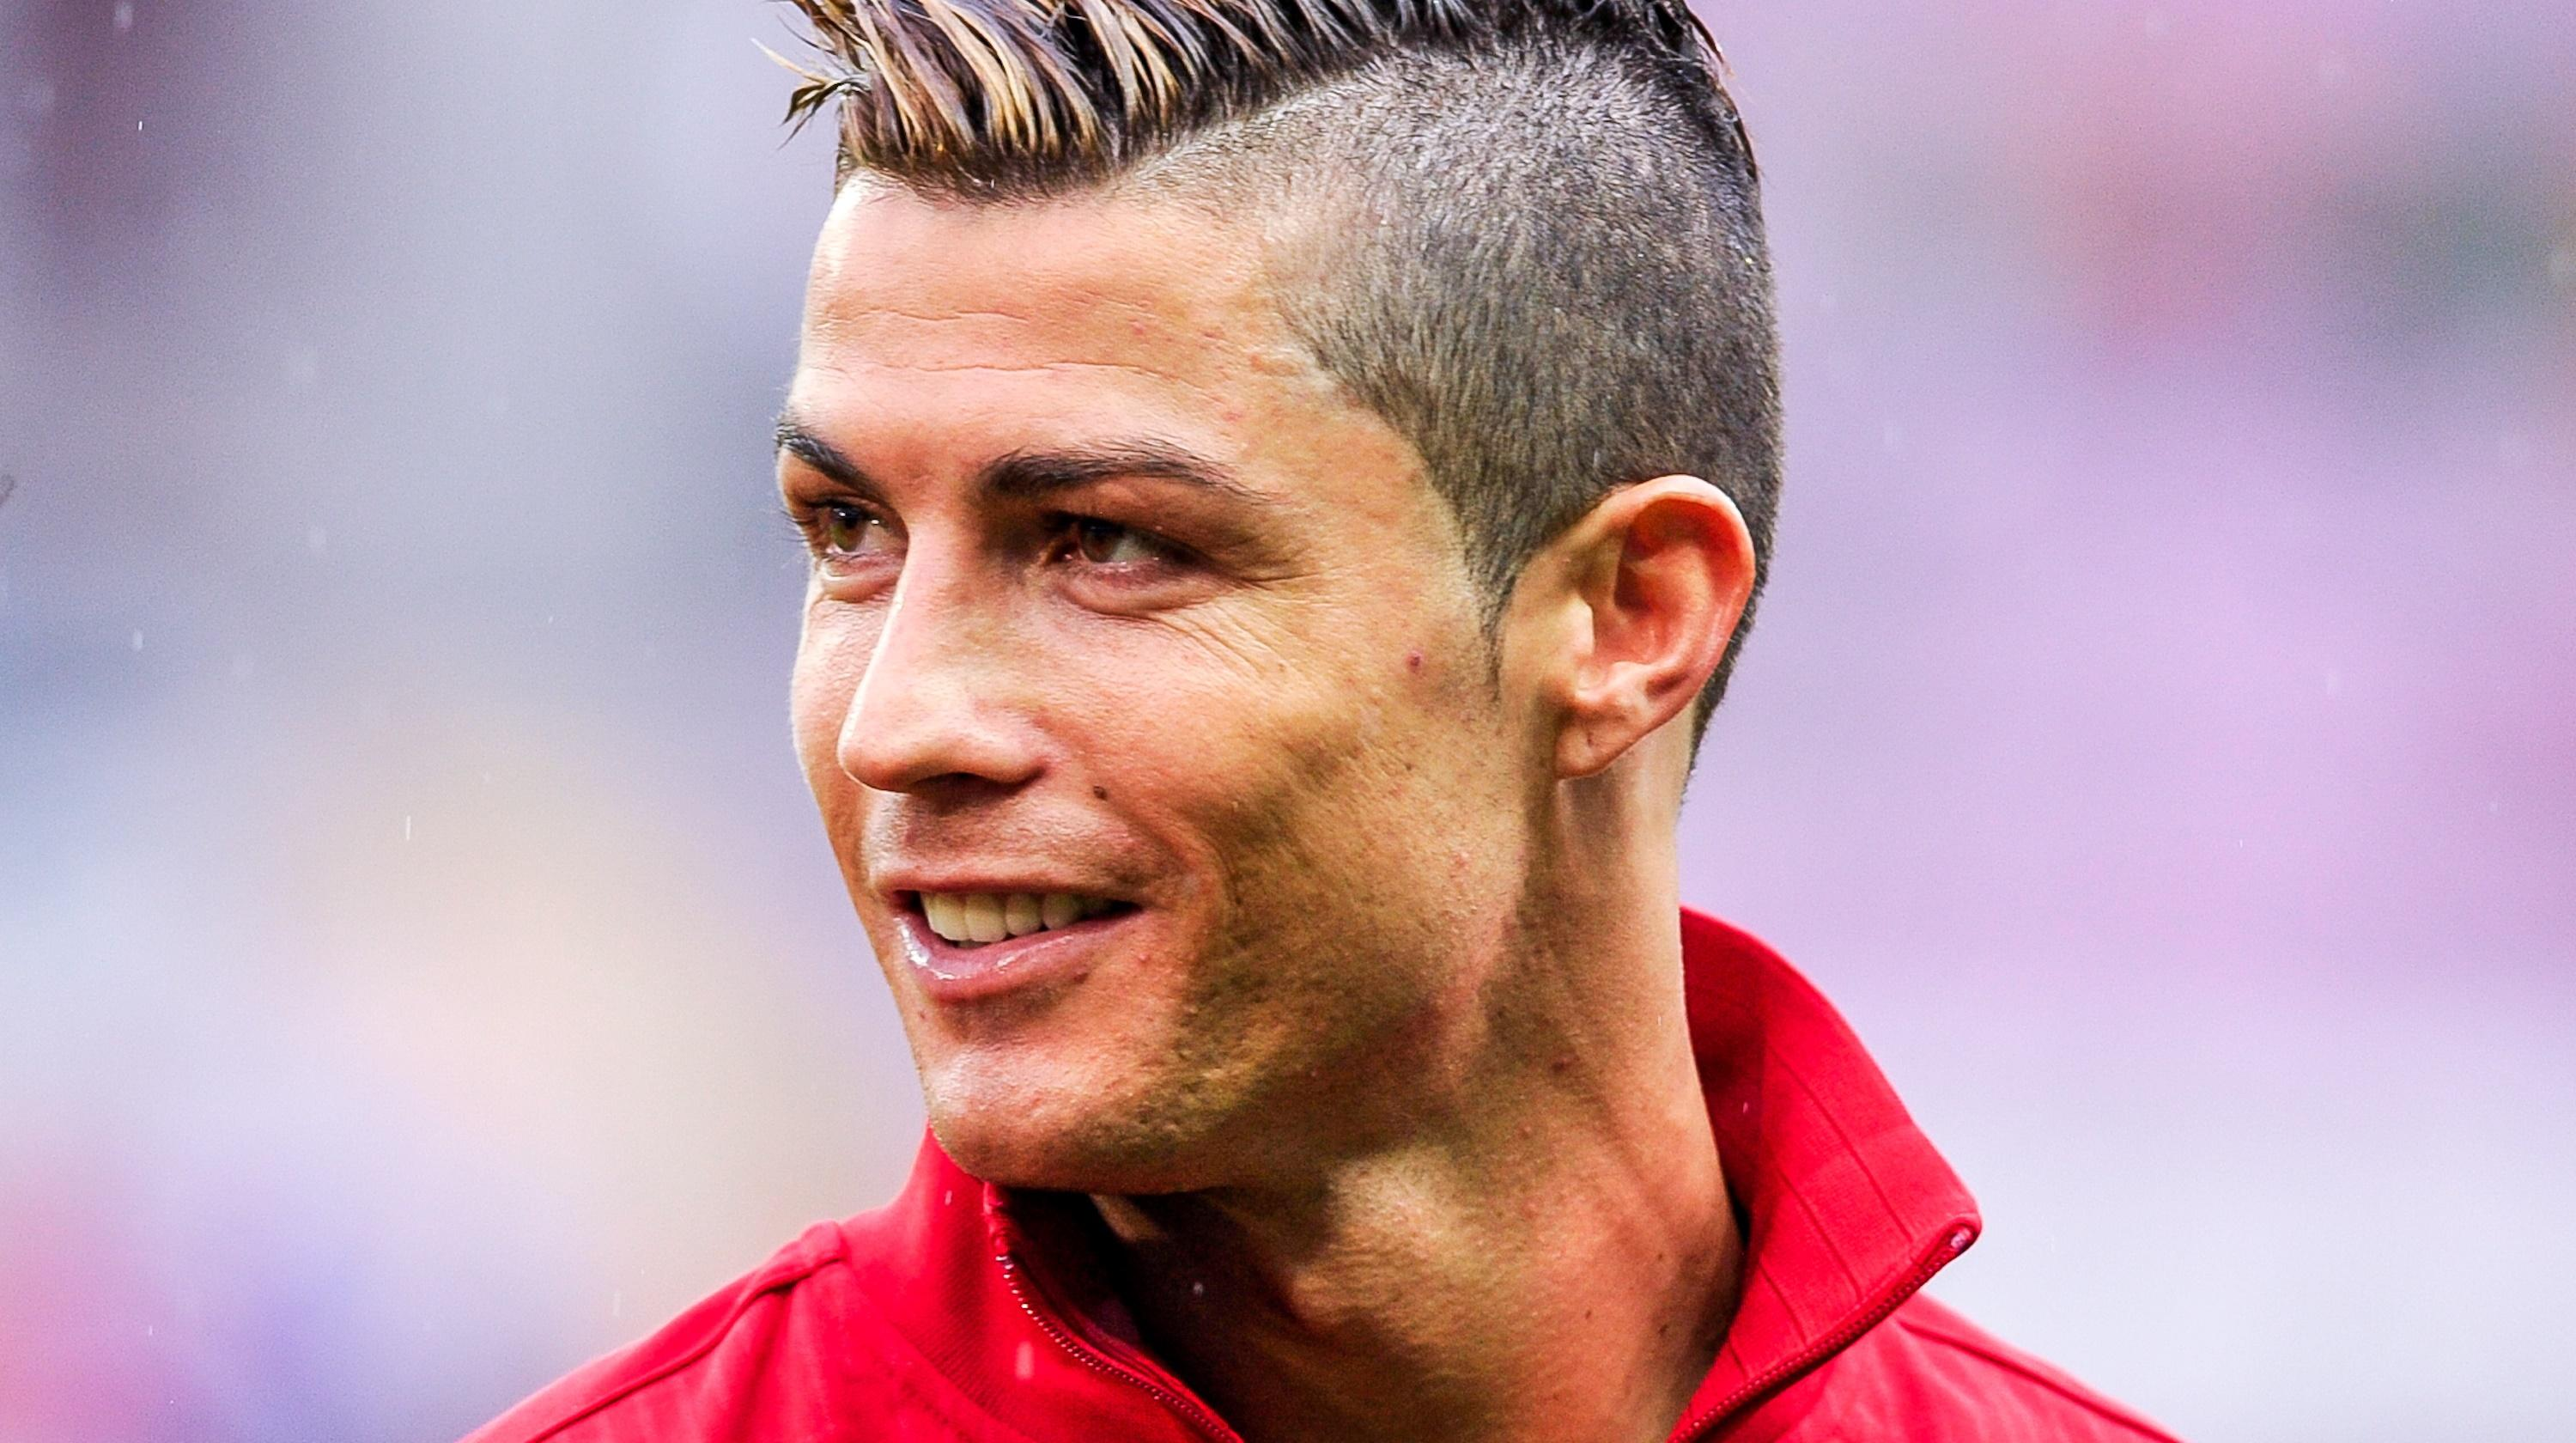 Cristiano Ronaldo Hairstyles For Men Sophie Hairstyles 9399